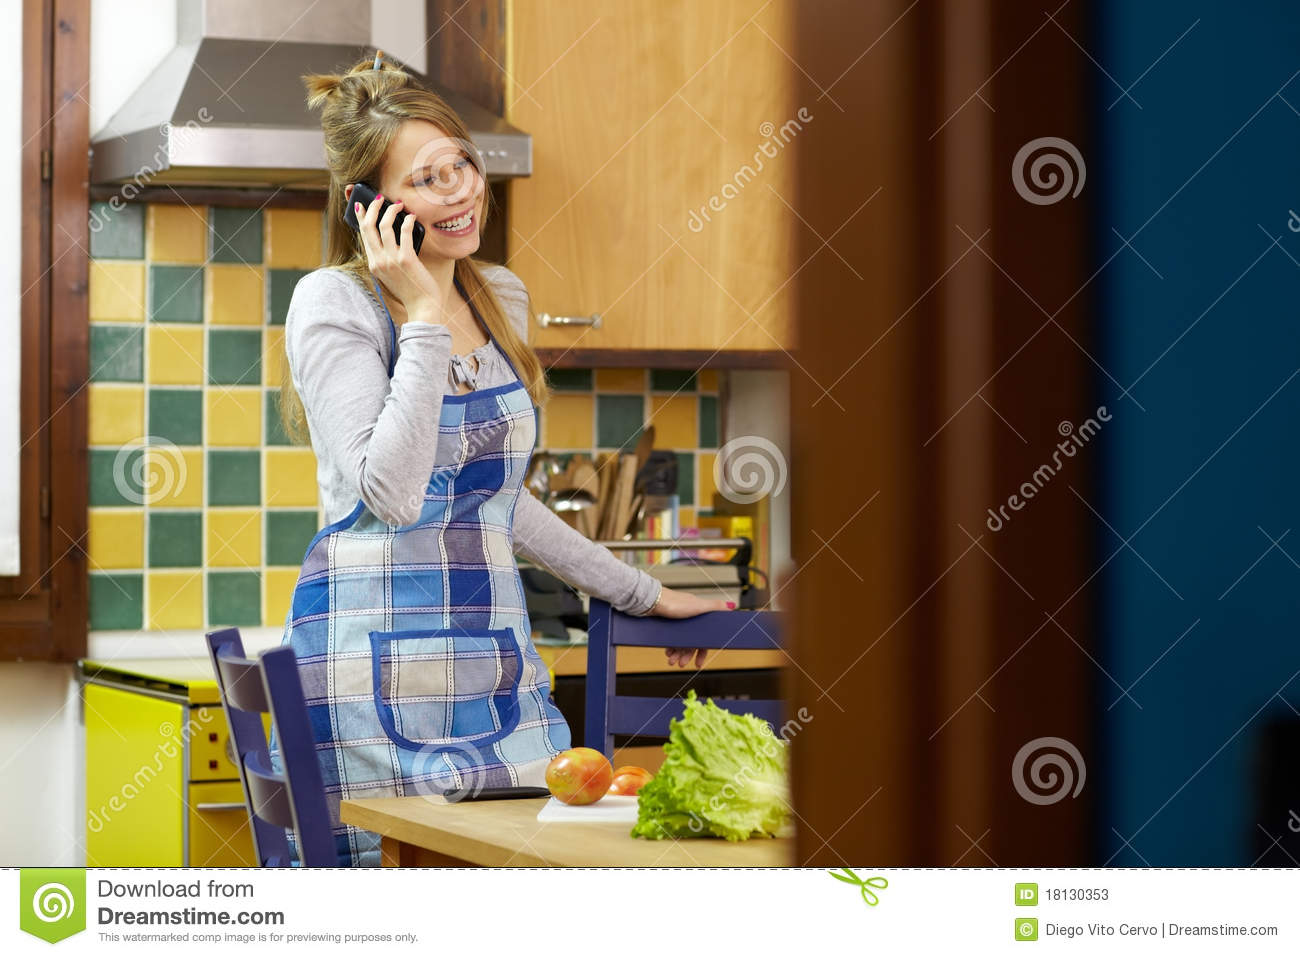 Man Cooking At Home Stock Photos - Image: 18130353